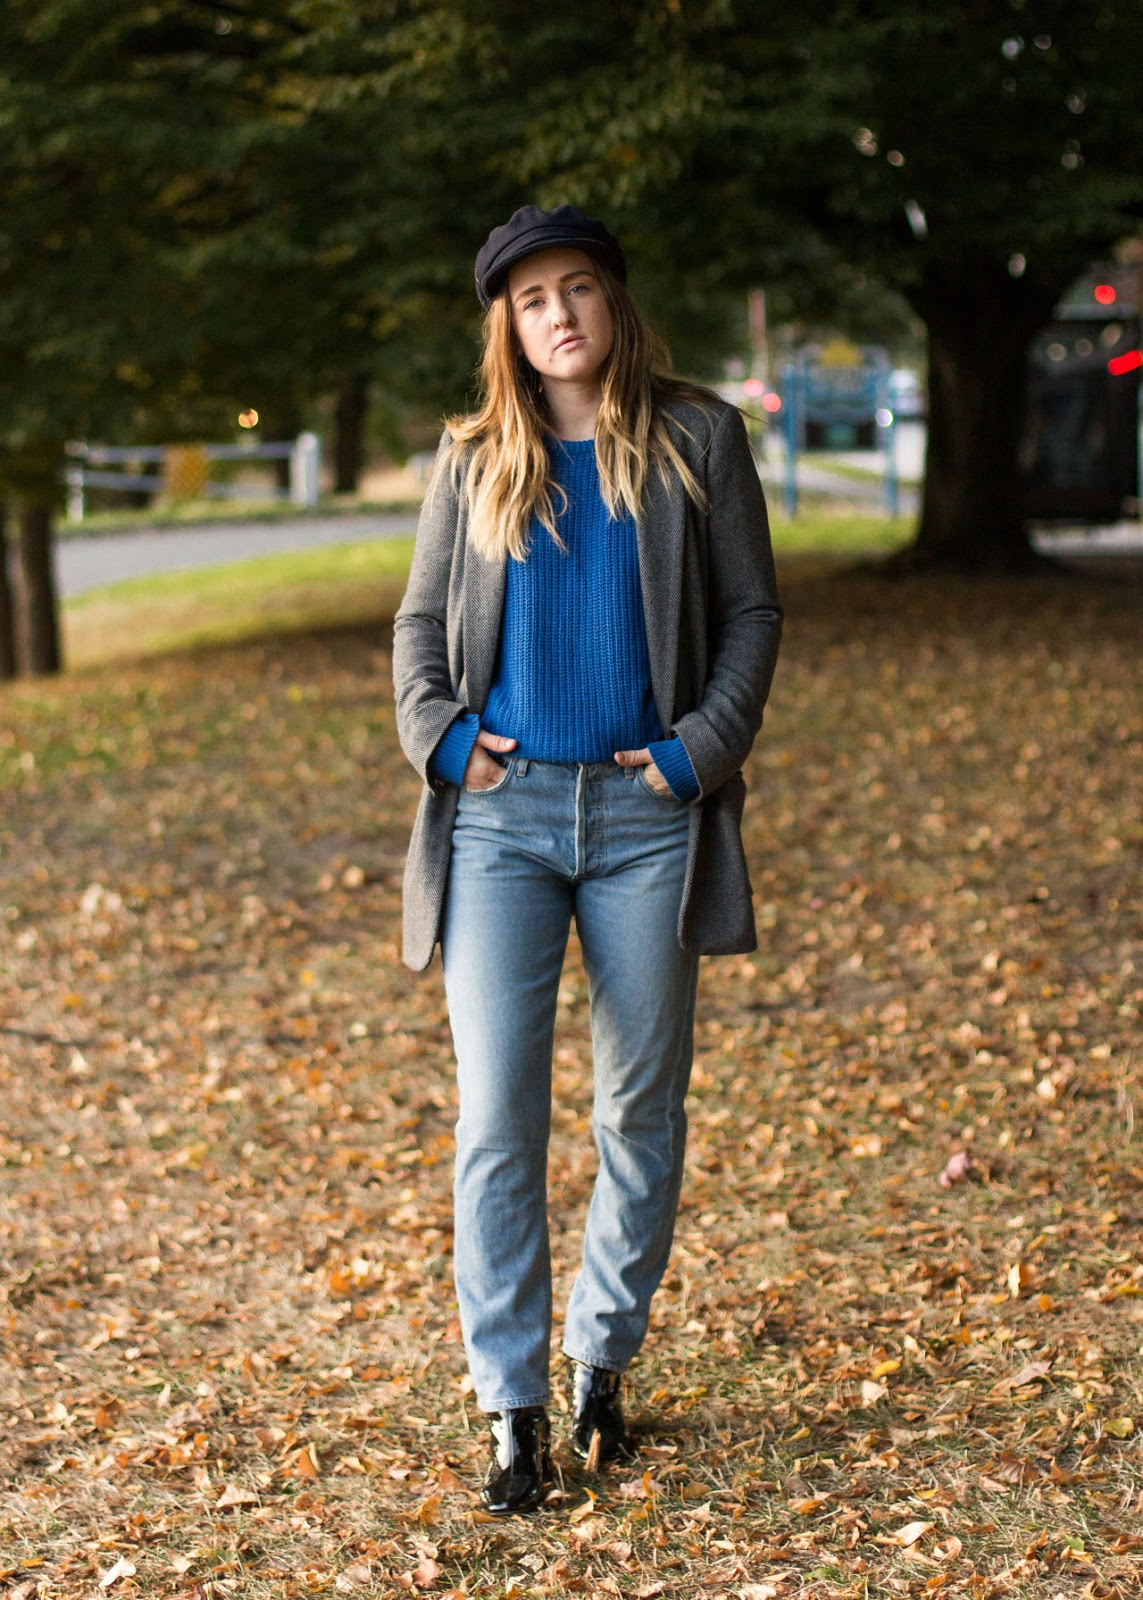 5 trends to buy this Fall - Outfit - Vancouver Fashion Blogger - Style tips